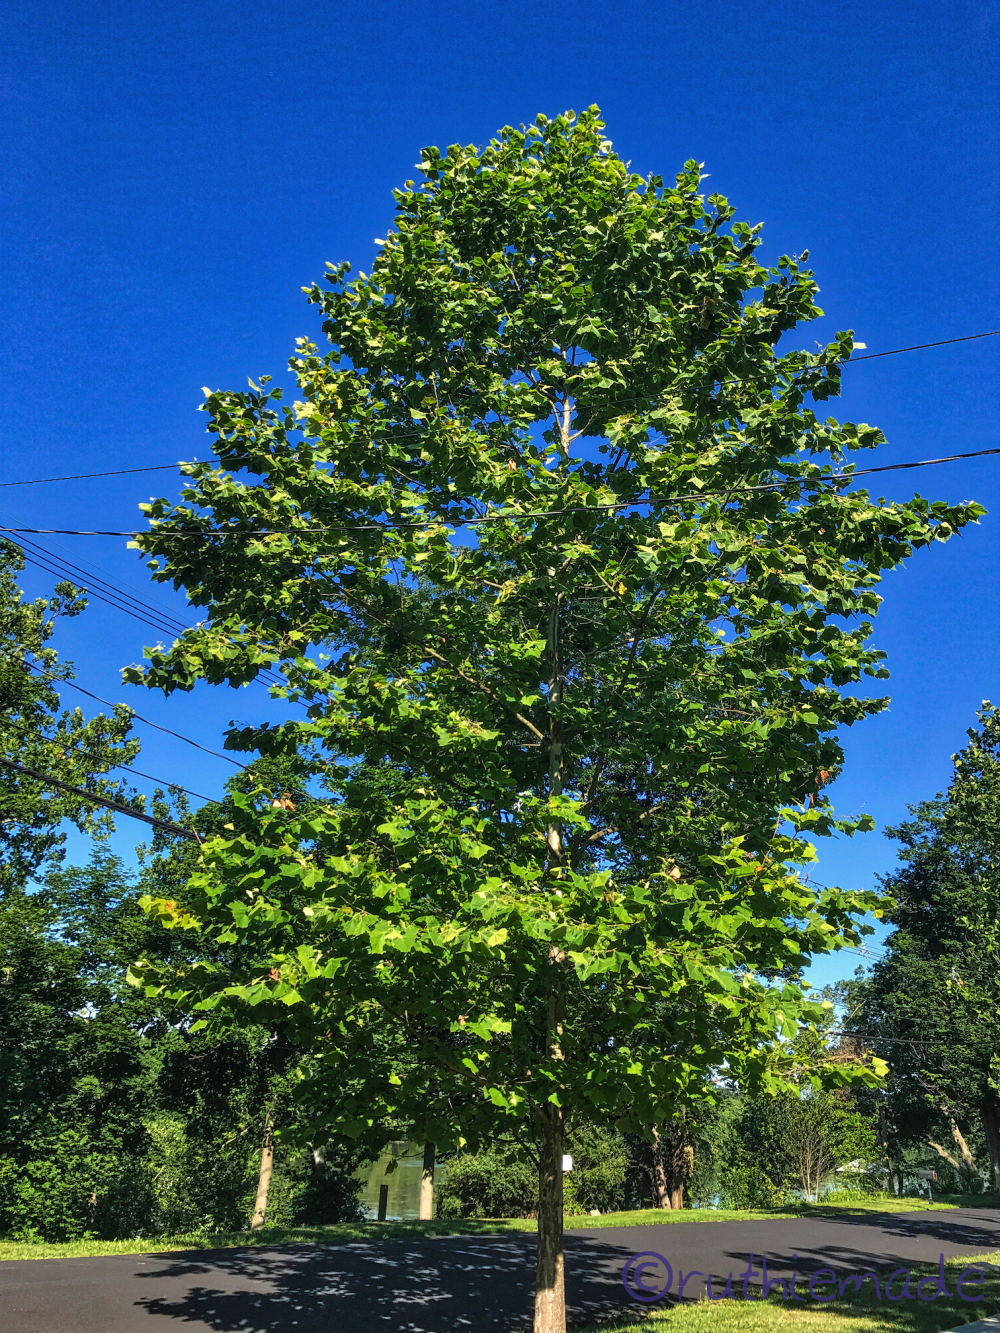 July SYcamore Tree